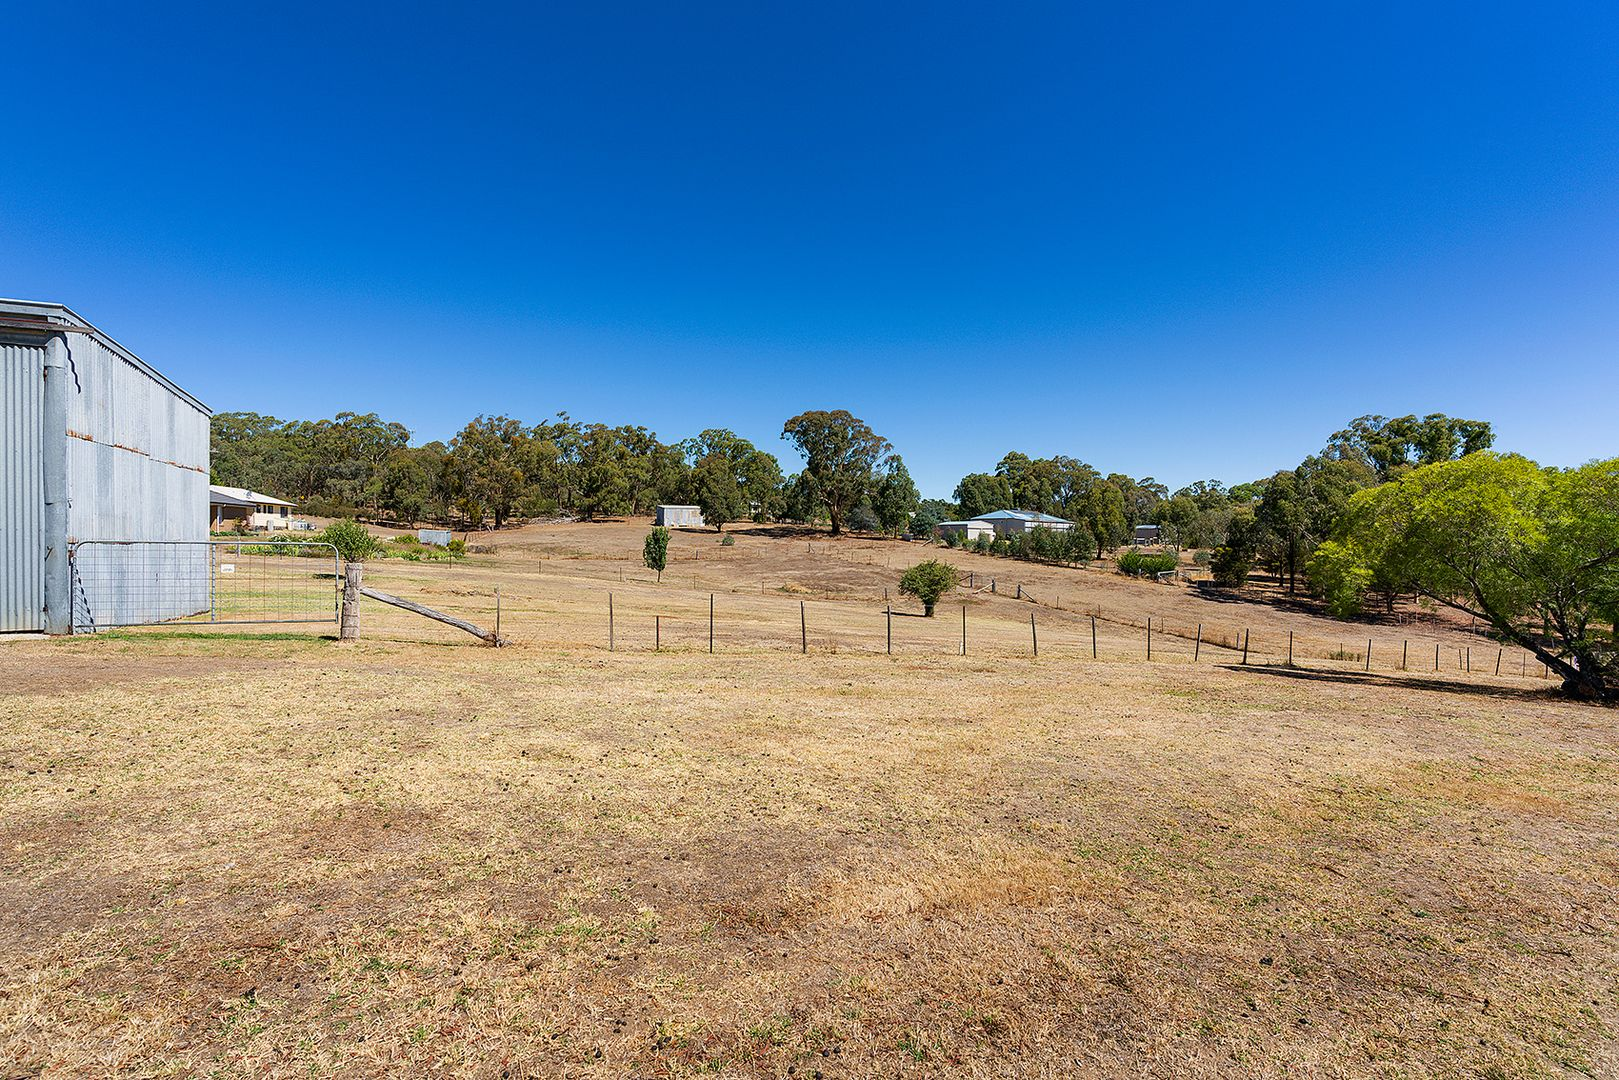 Lot 1 TP945333 and CA4 Section 19, McCrae Street, Elphinstone VIC 3448, Image 1